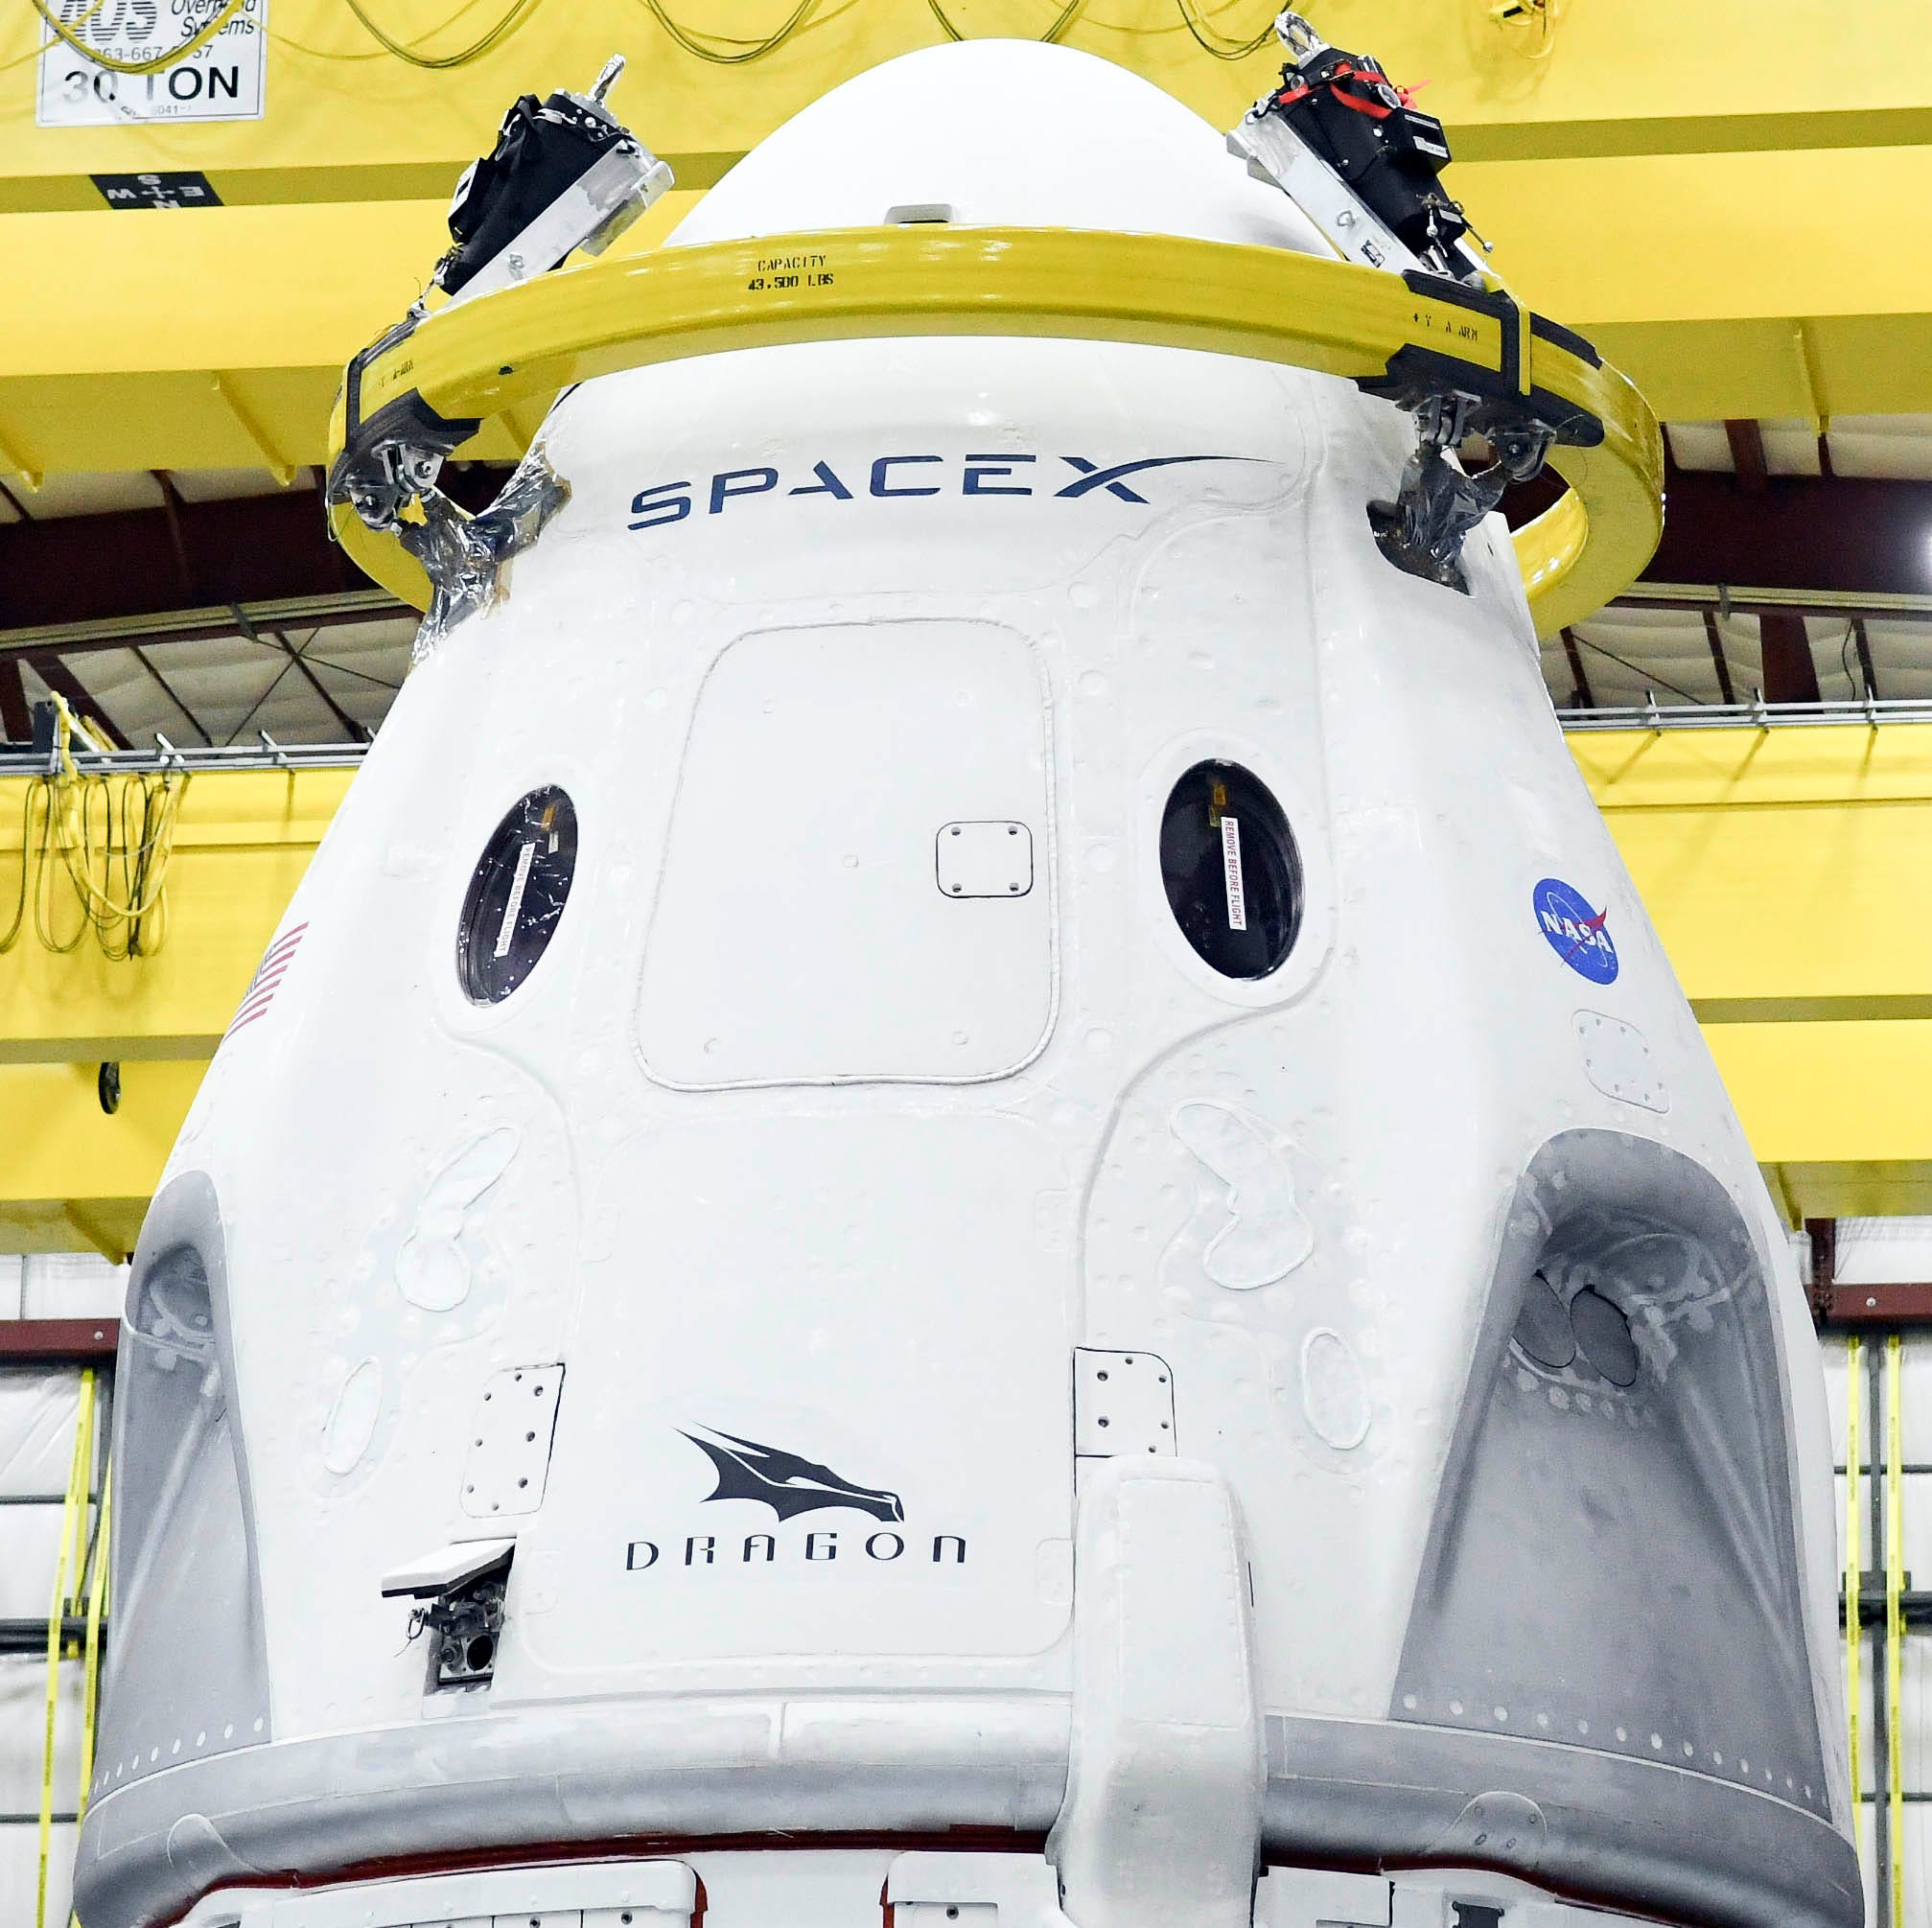 SpaceX targeting March launch of Crew Dragon test flight from KSC